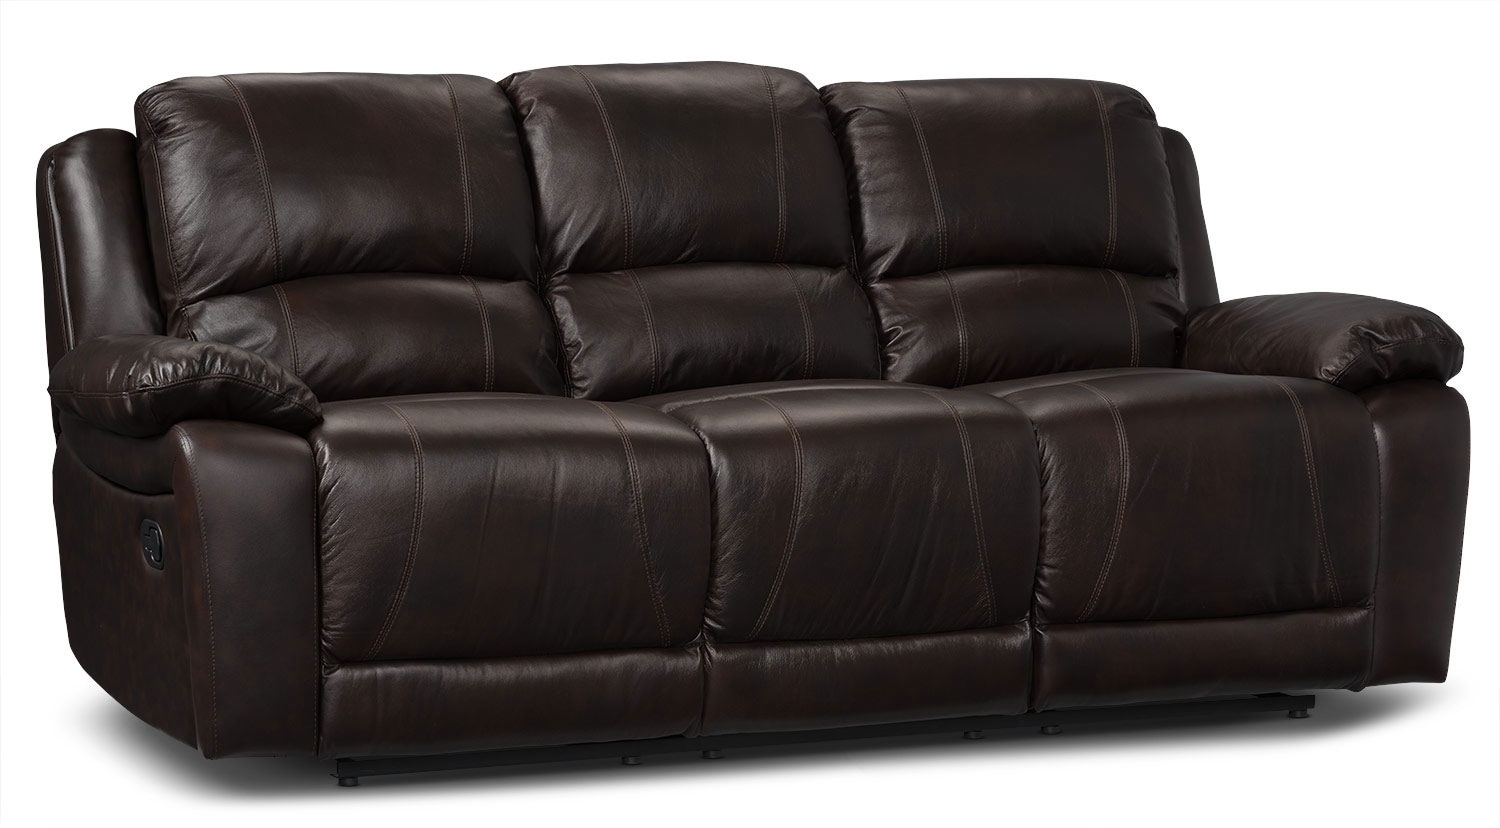 Marco genuine leather power reclining sofa chocolate for Furniture sofas and couches